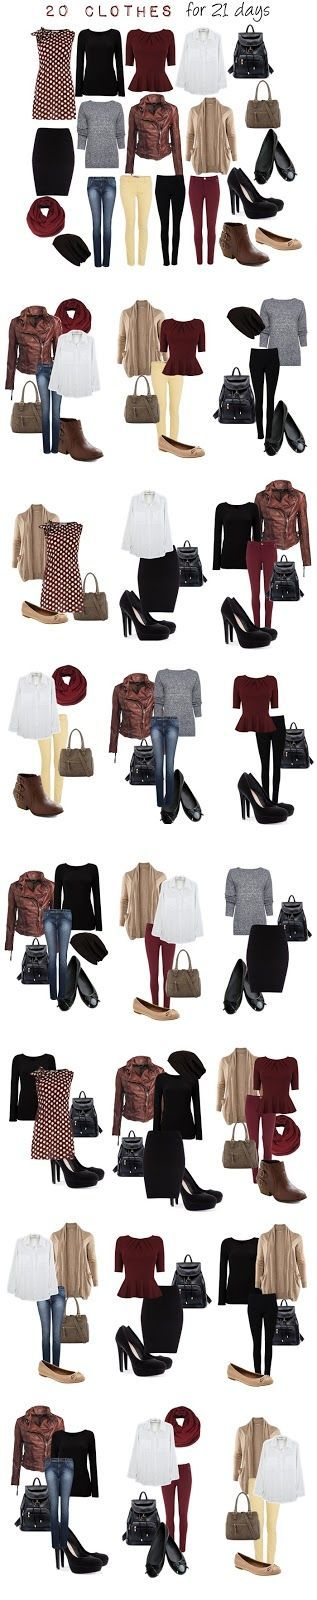 MK bag?outlet online MK handbag Outlet Onlines?liked on Polyvore | See more about travel wardrobe, 21 days and clothes.